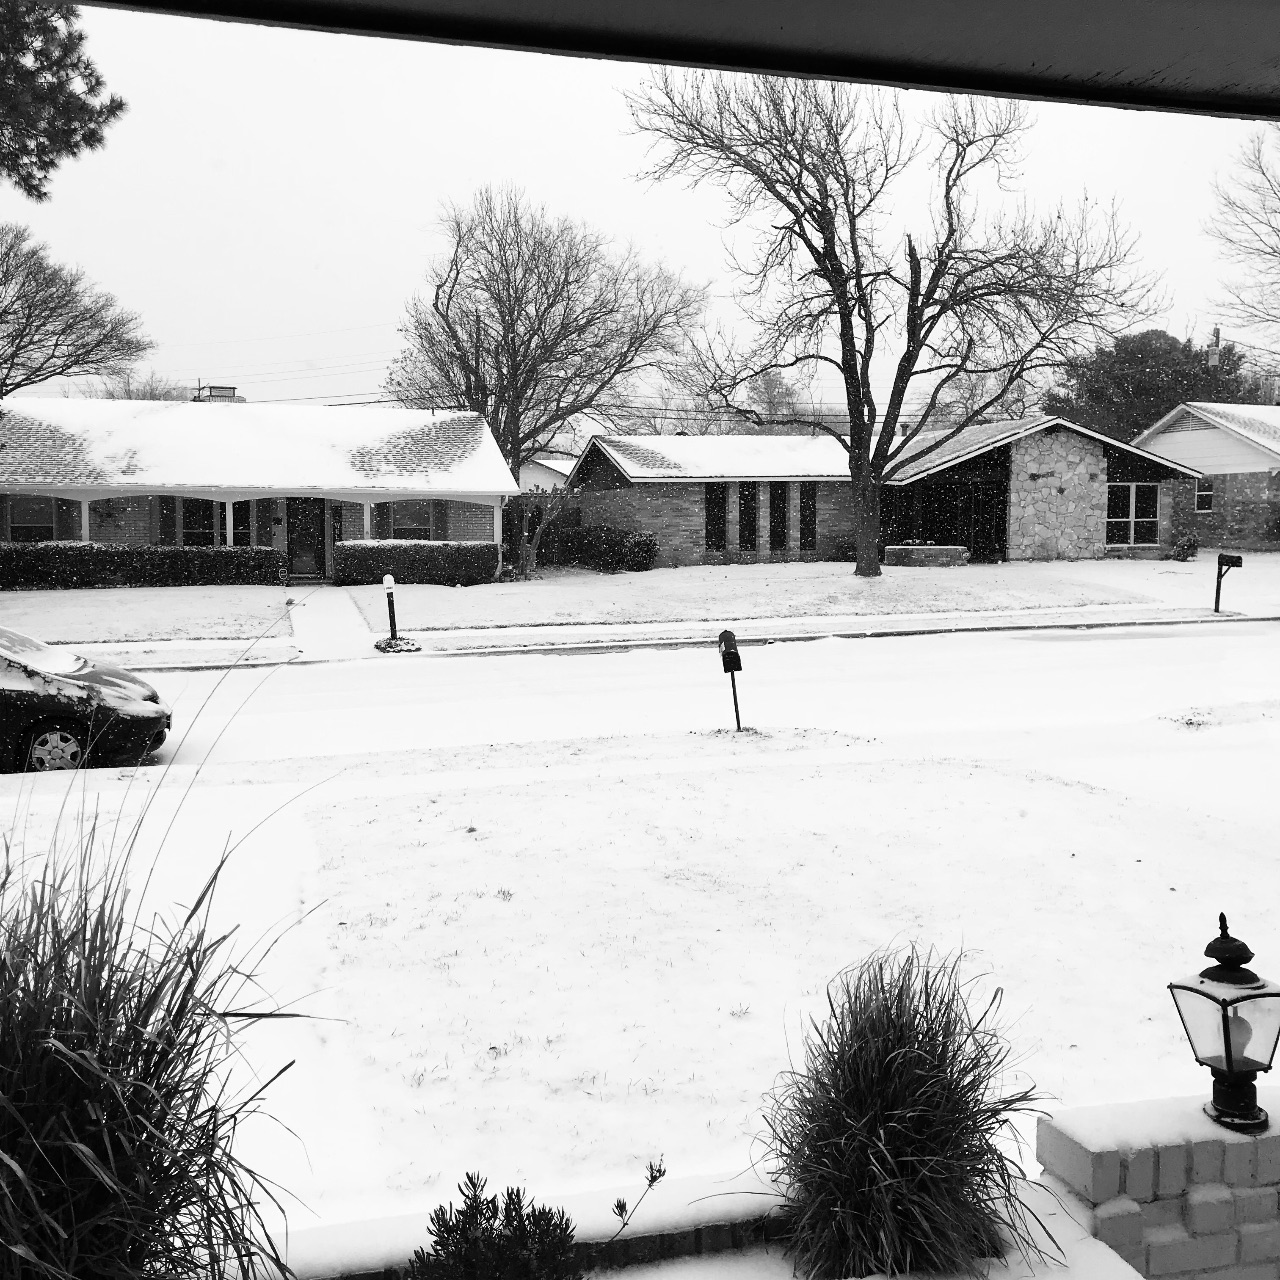 The Texas winter storm of February 2021